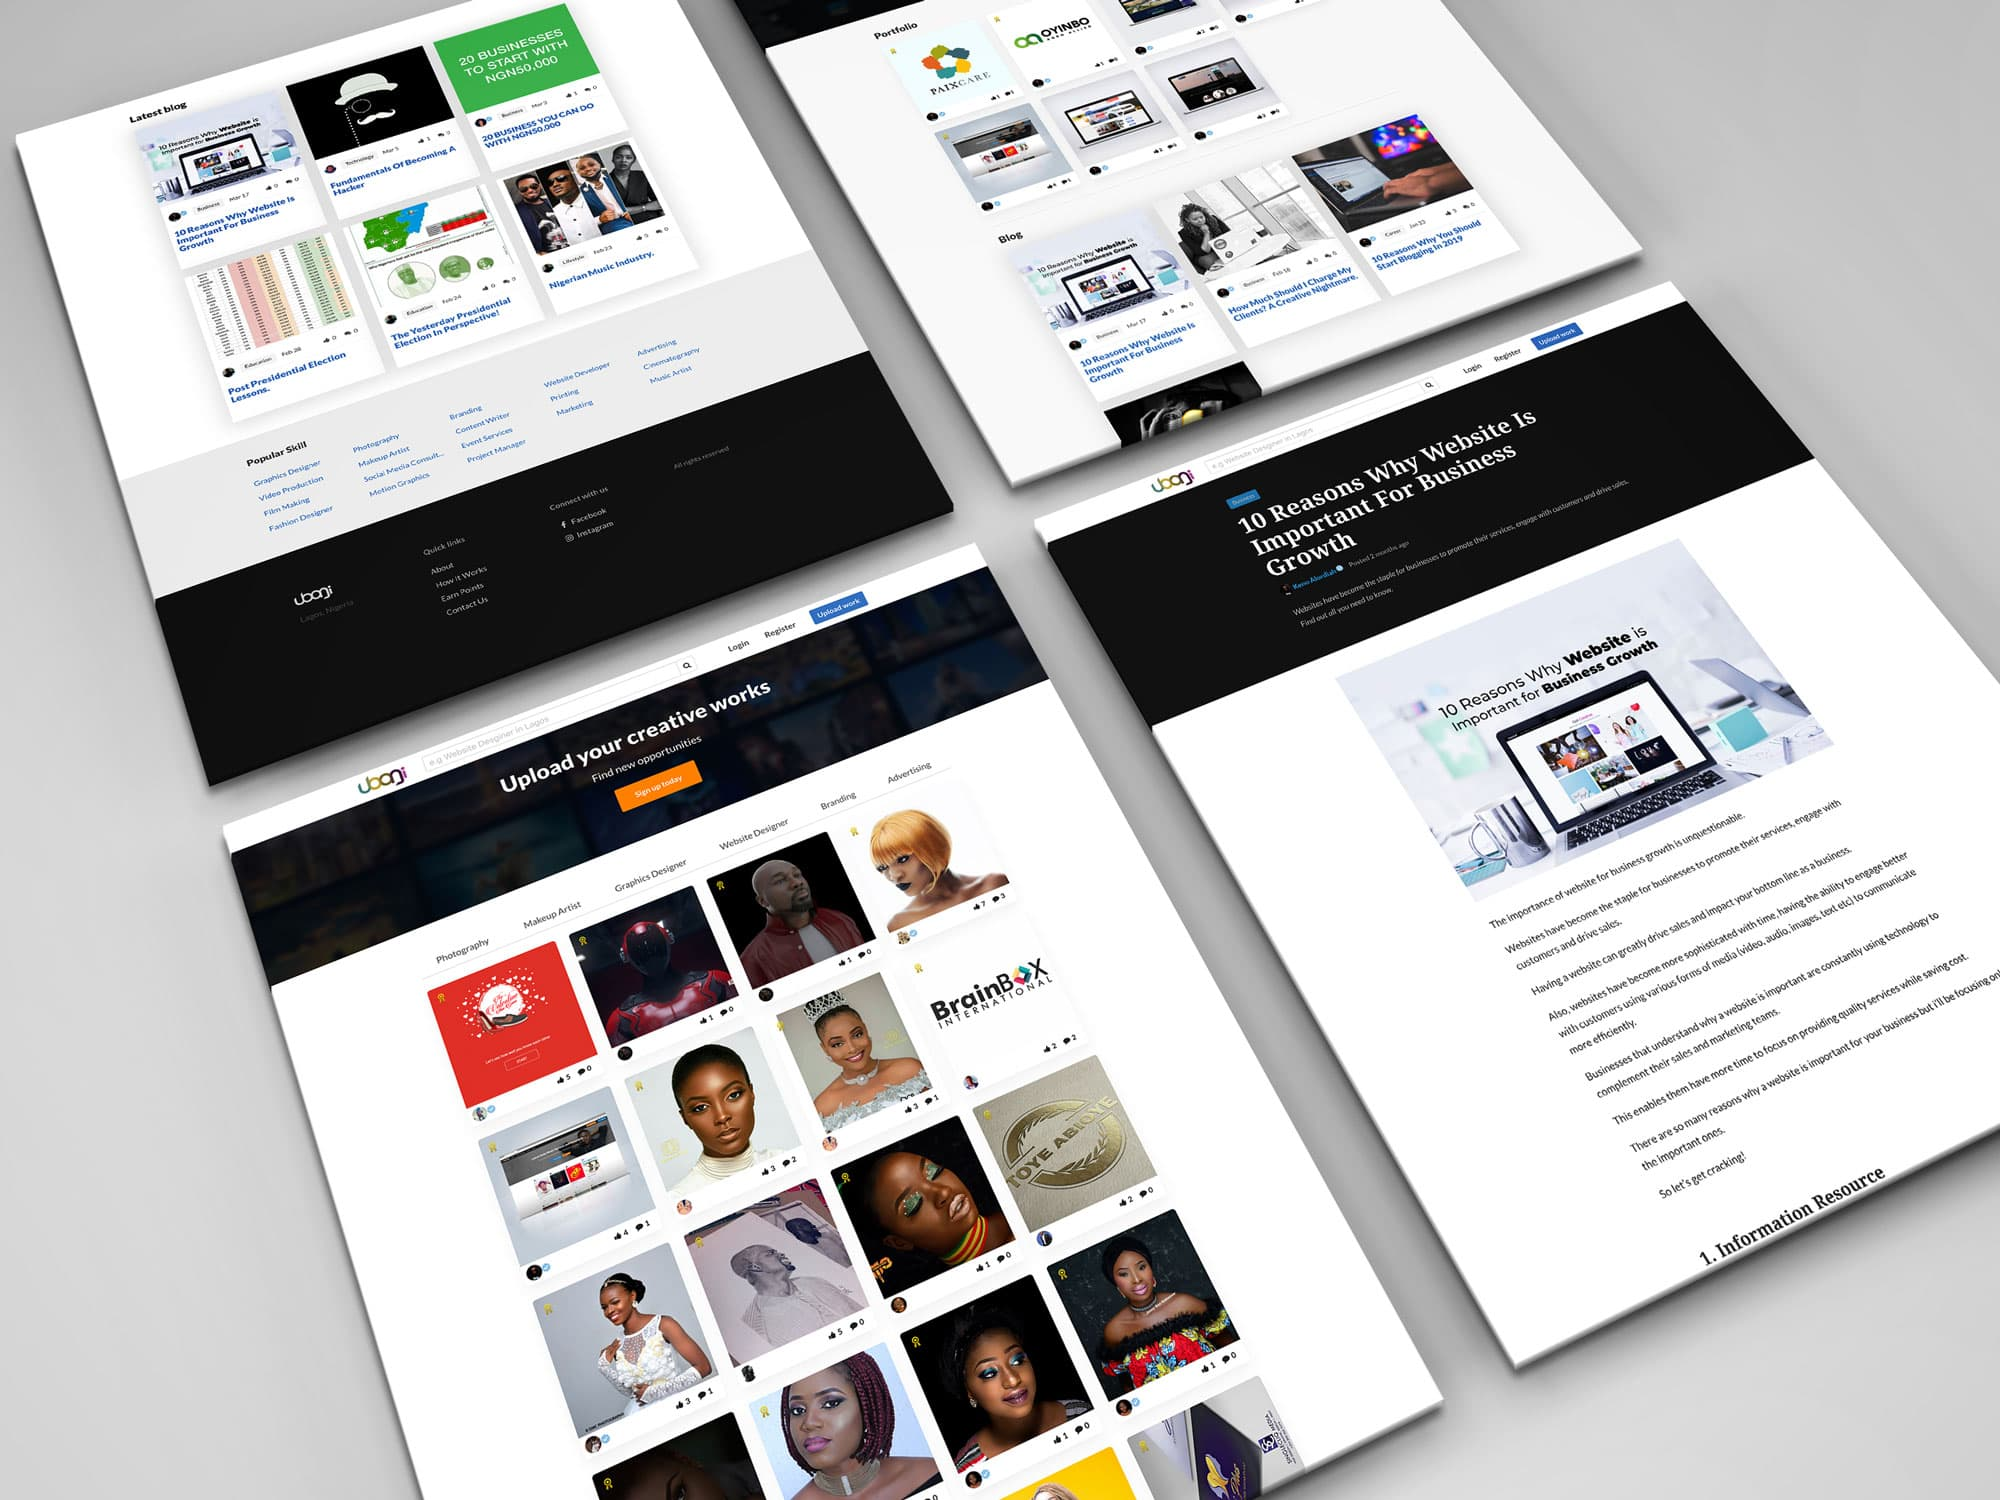 Ubanji.com website design mockup